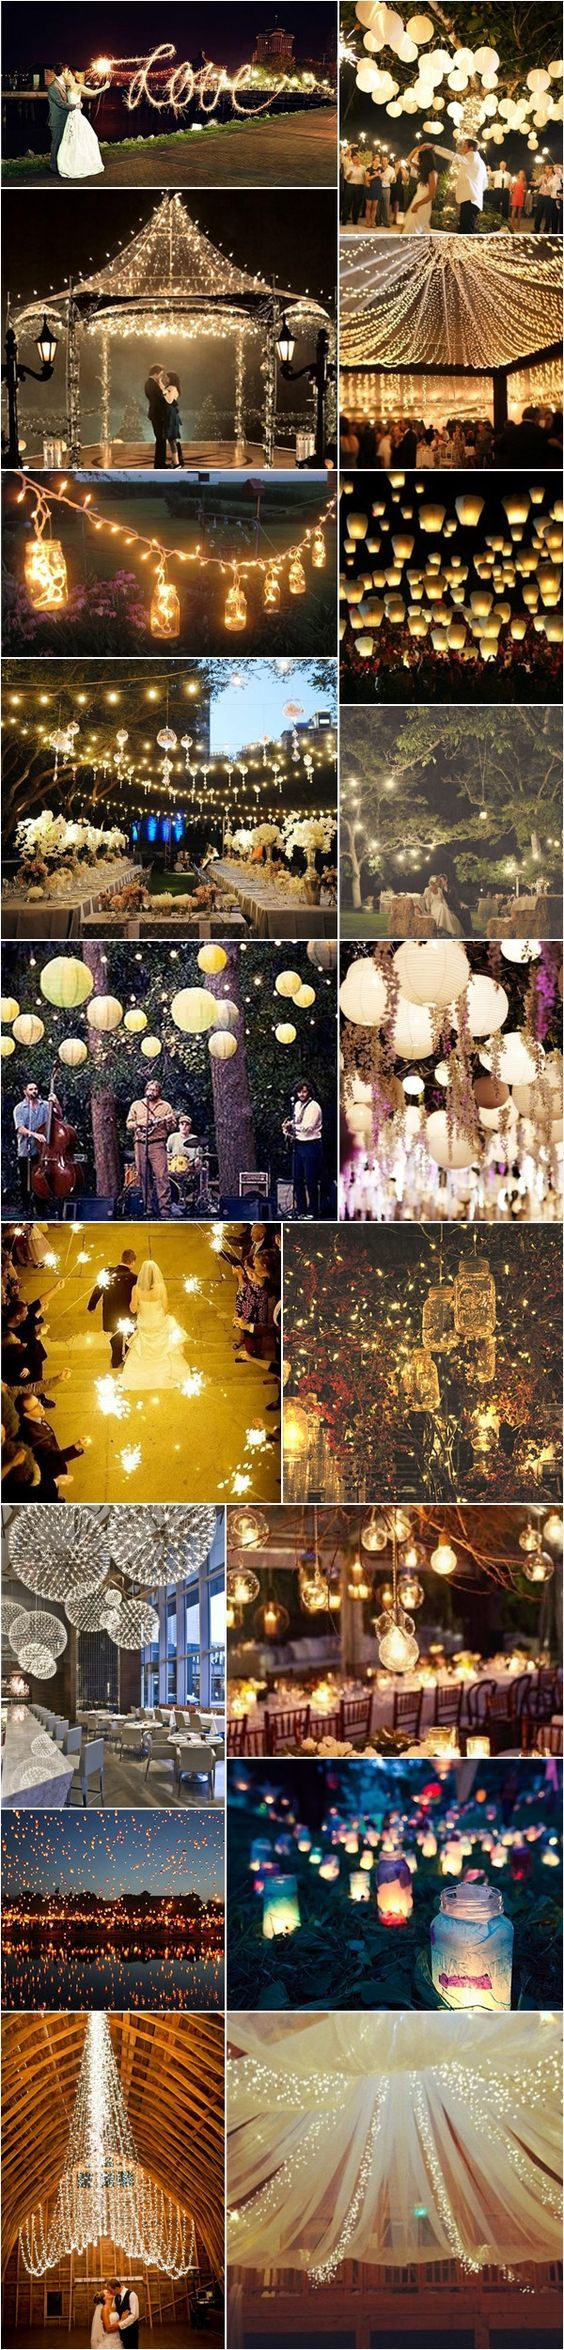 222 best wedding images on pinterest marriage wedding and dream